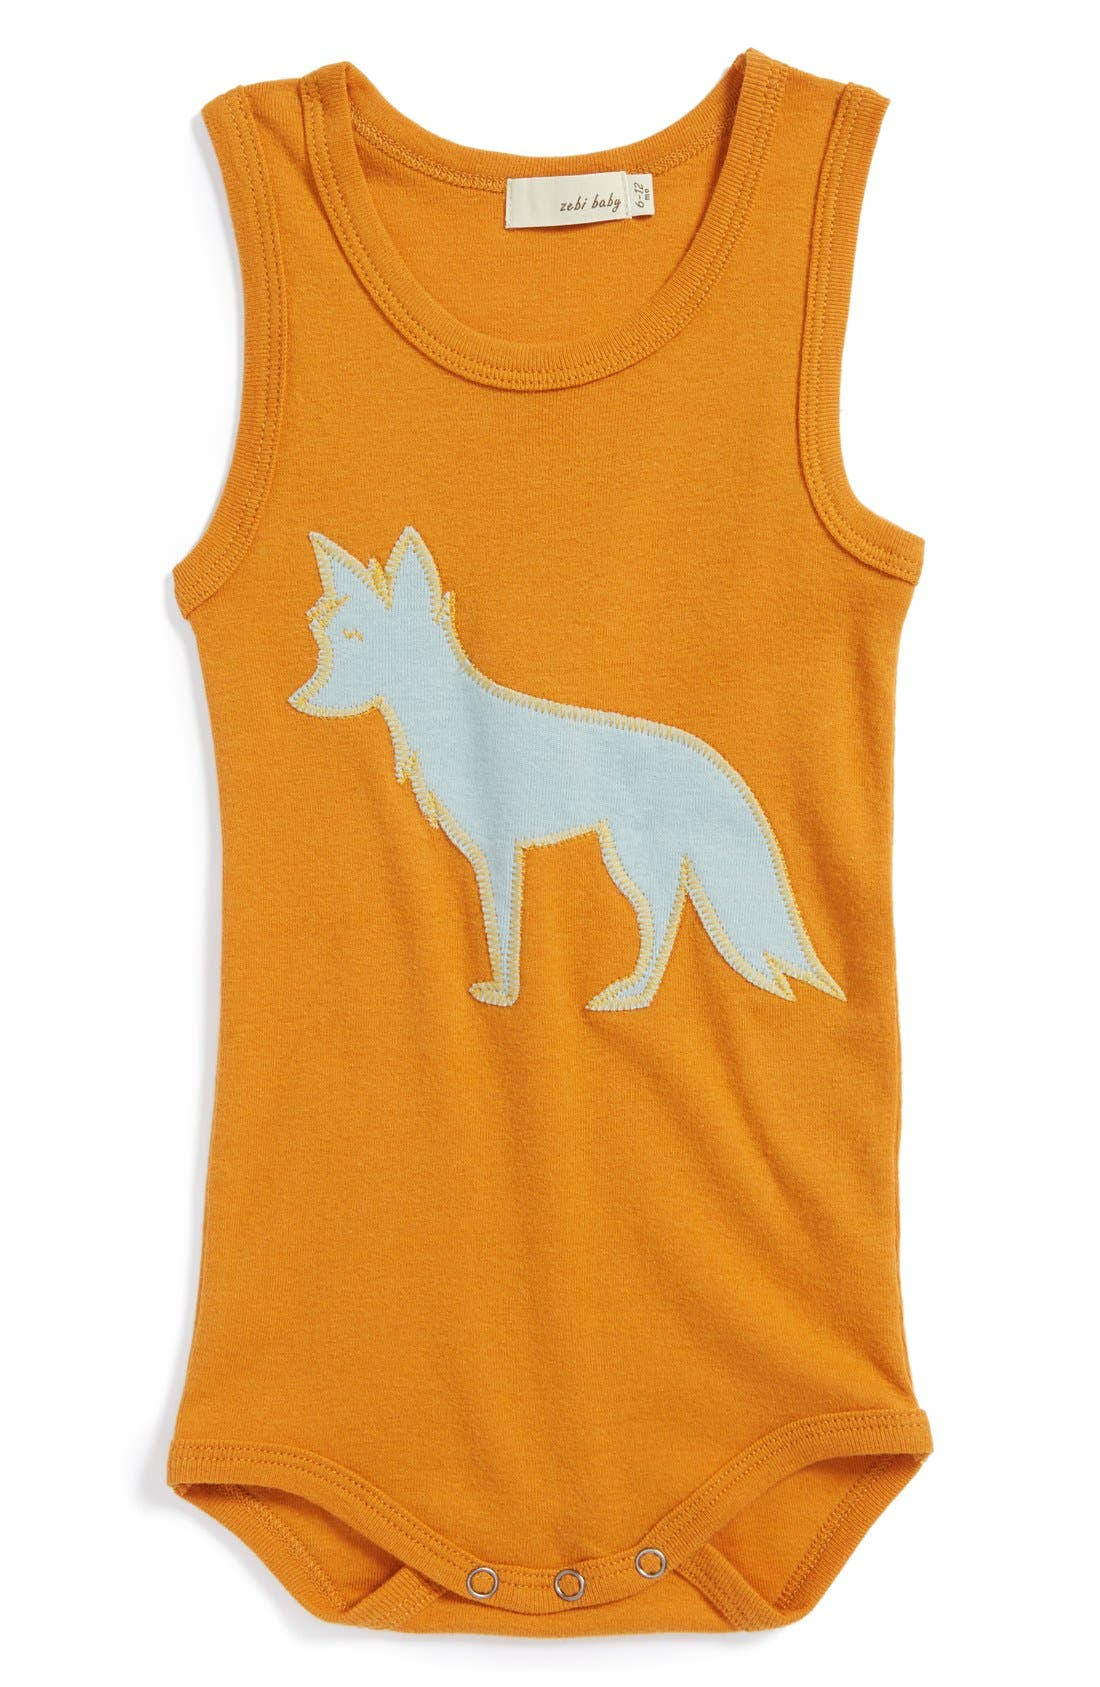 Main Image - Zebi Baby 'Fox' Organic Cotton Bodysuit (Baby Boys)